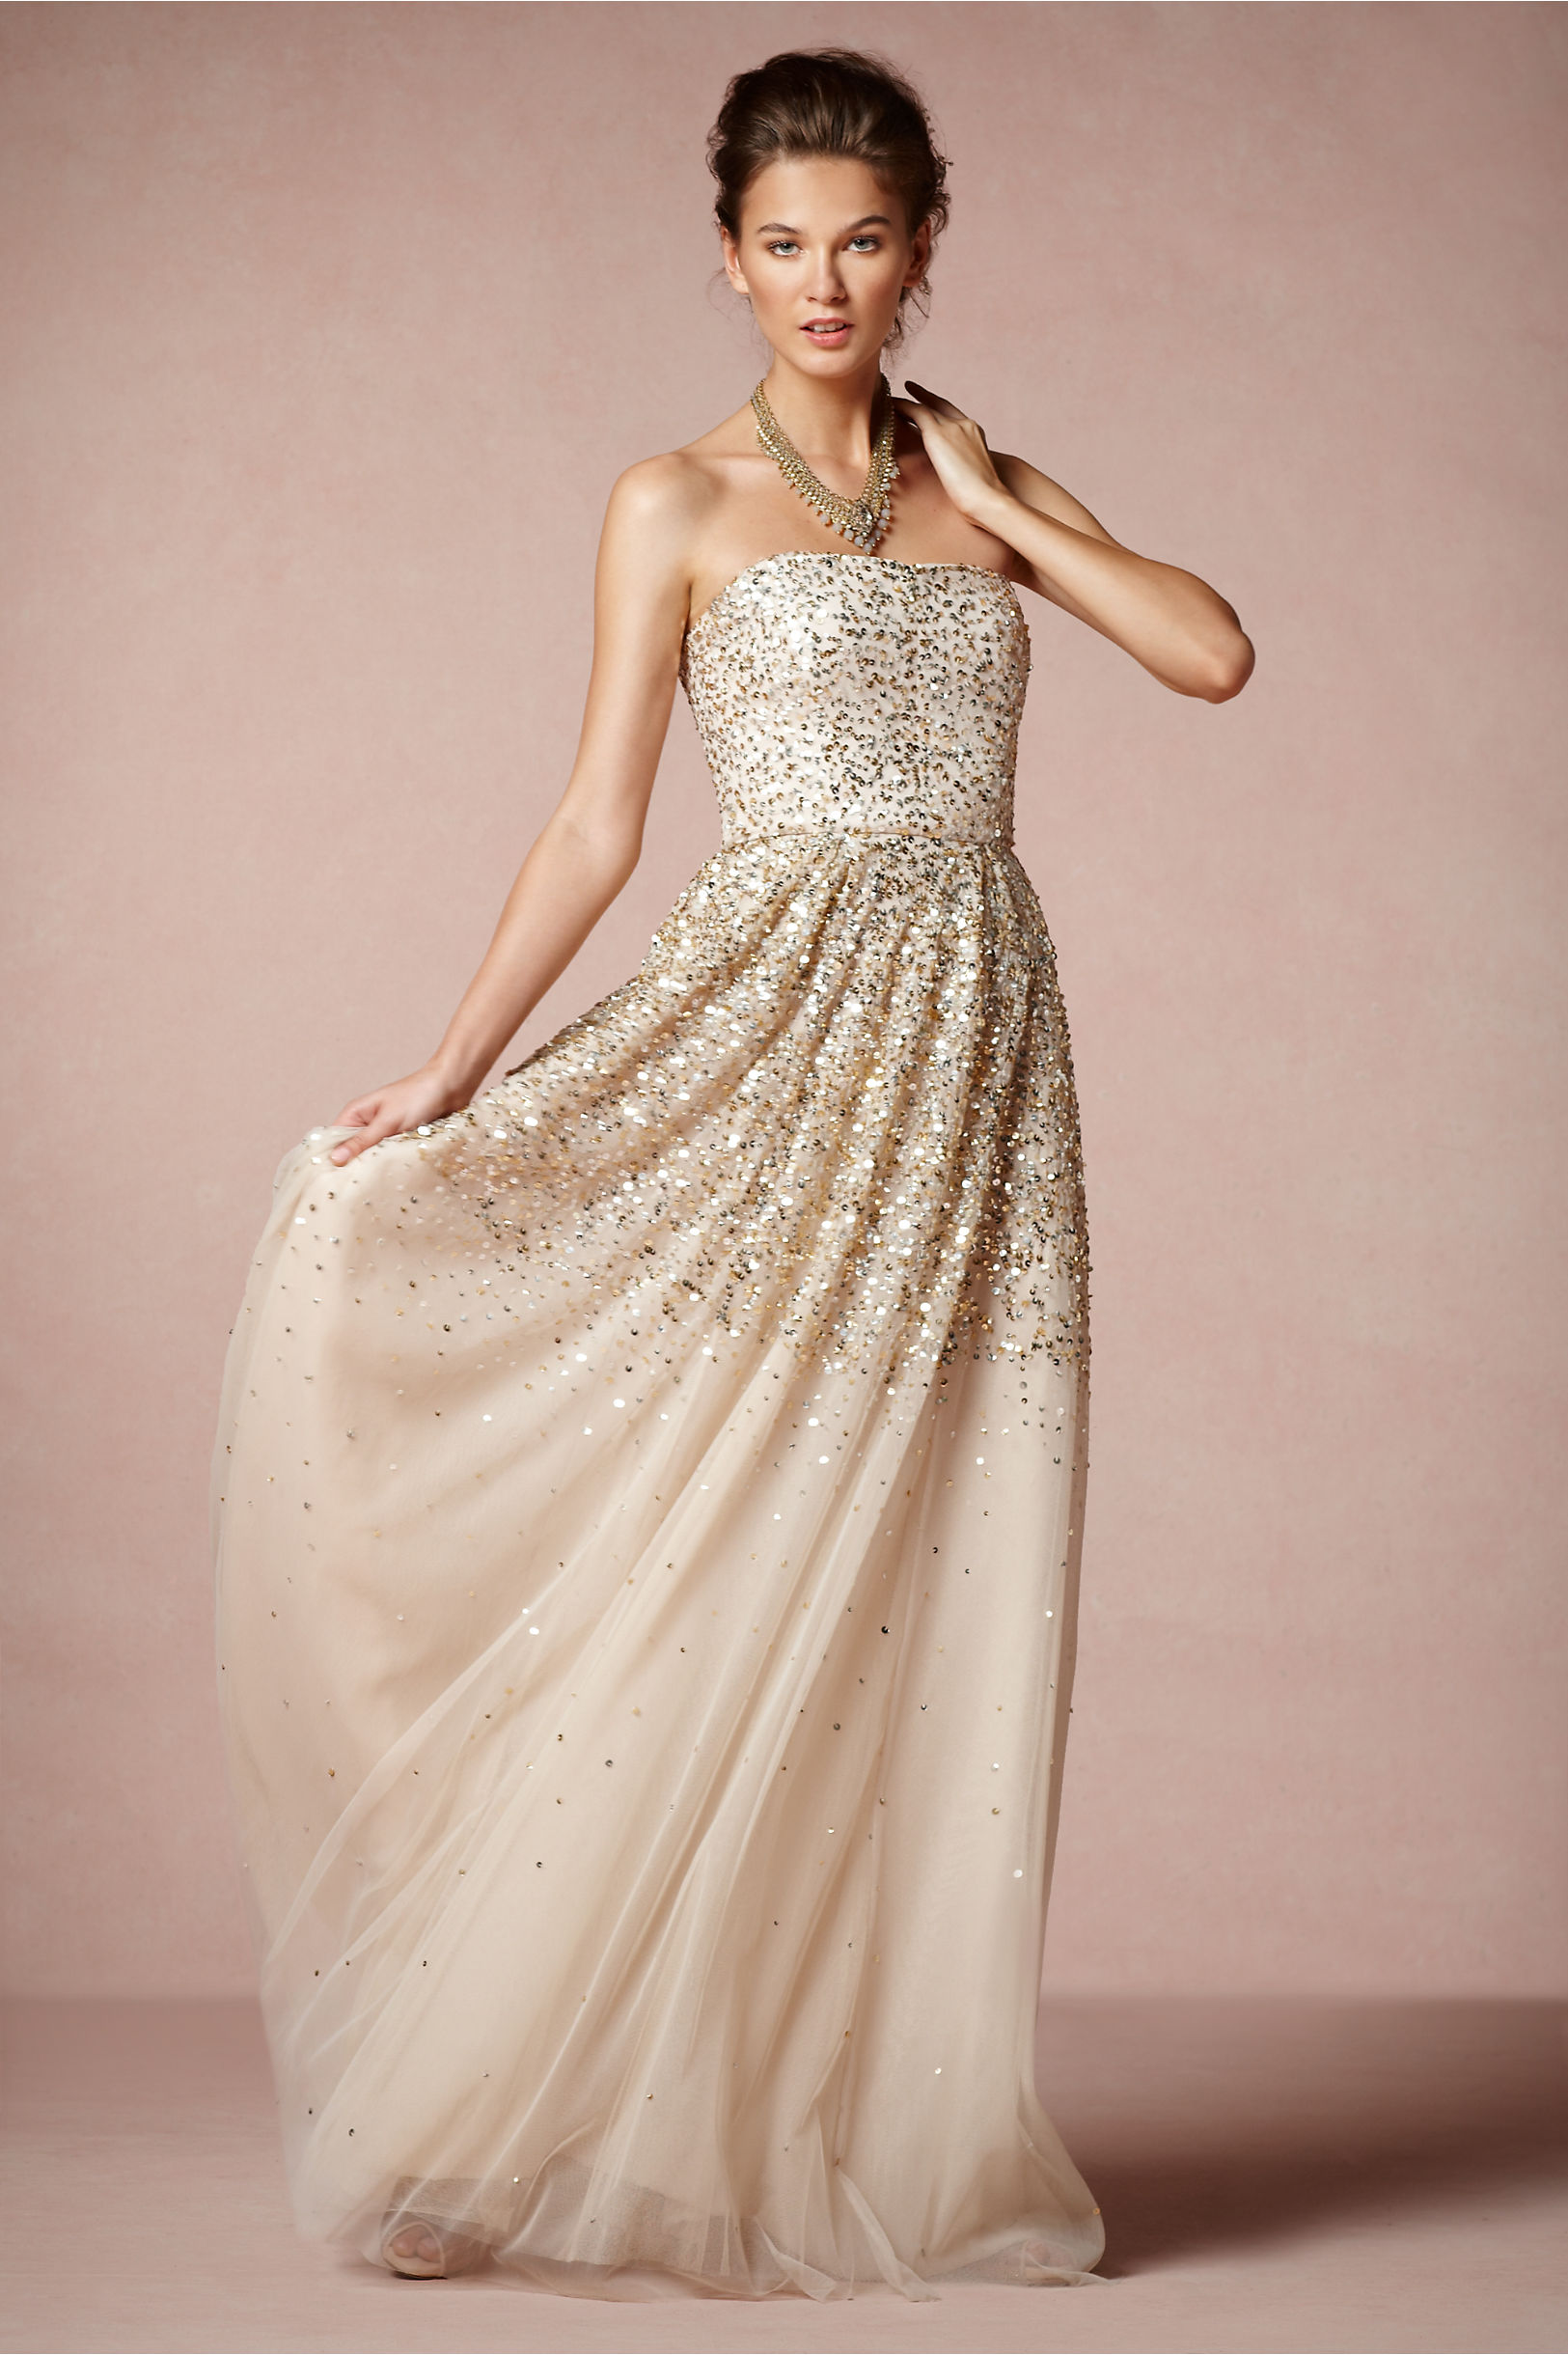 Isadora gown in bride bhldn rachel gilbert champagne isadora gown bhldn junglespirit Images